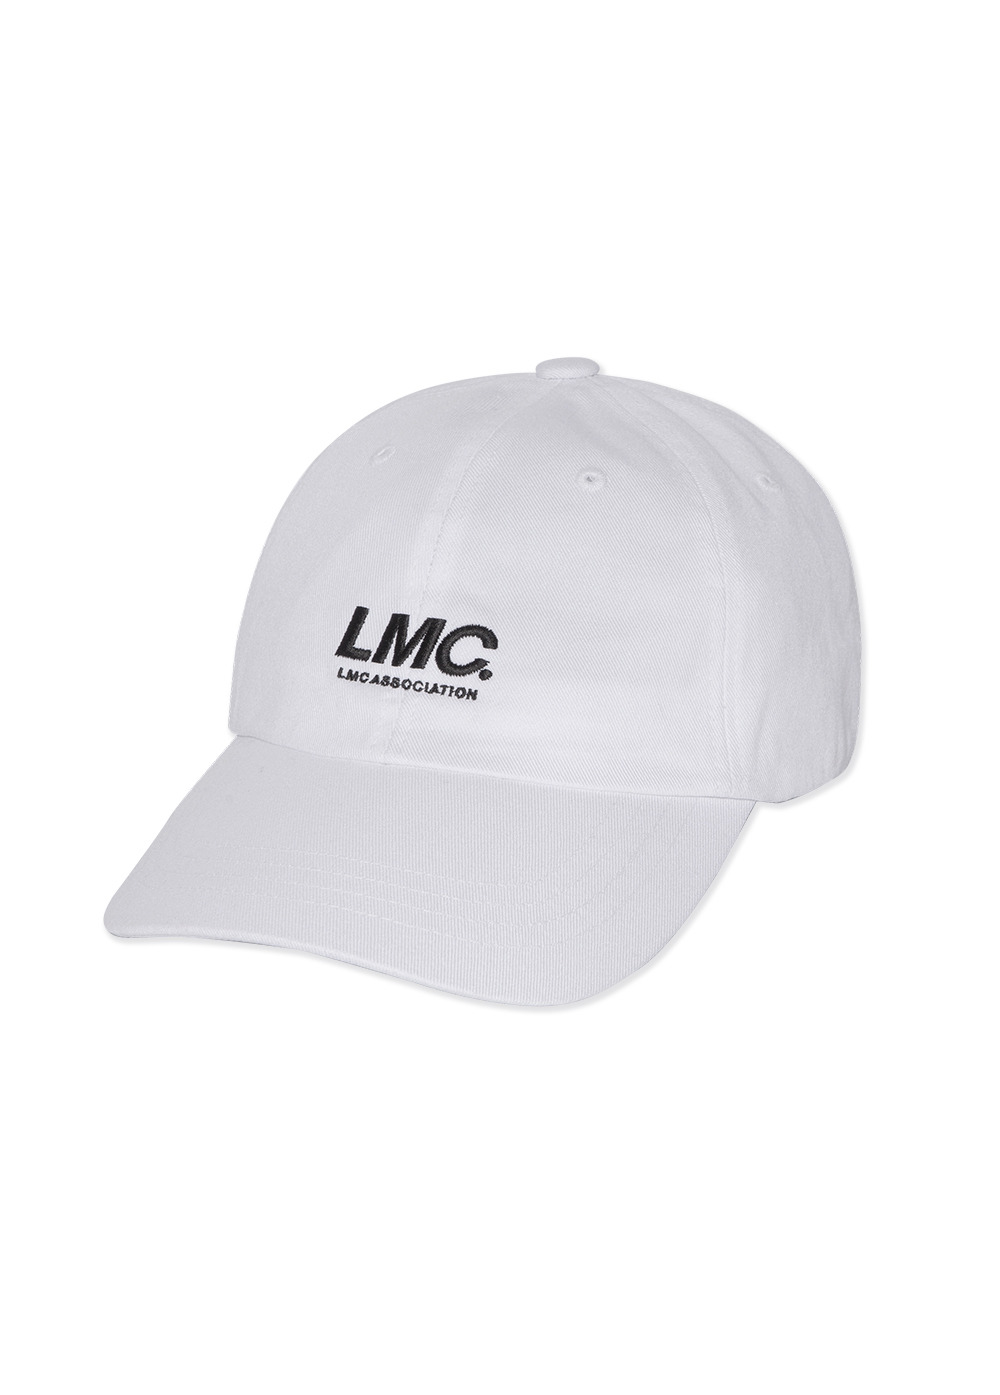 LMC ITALIC ASSOCIATION 6 PANEL CAP white